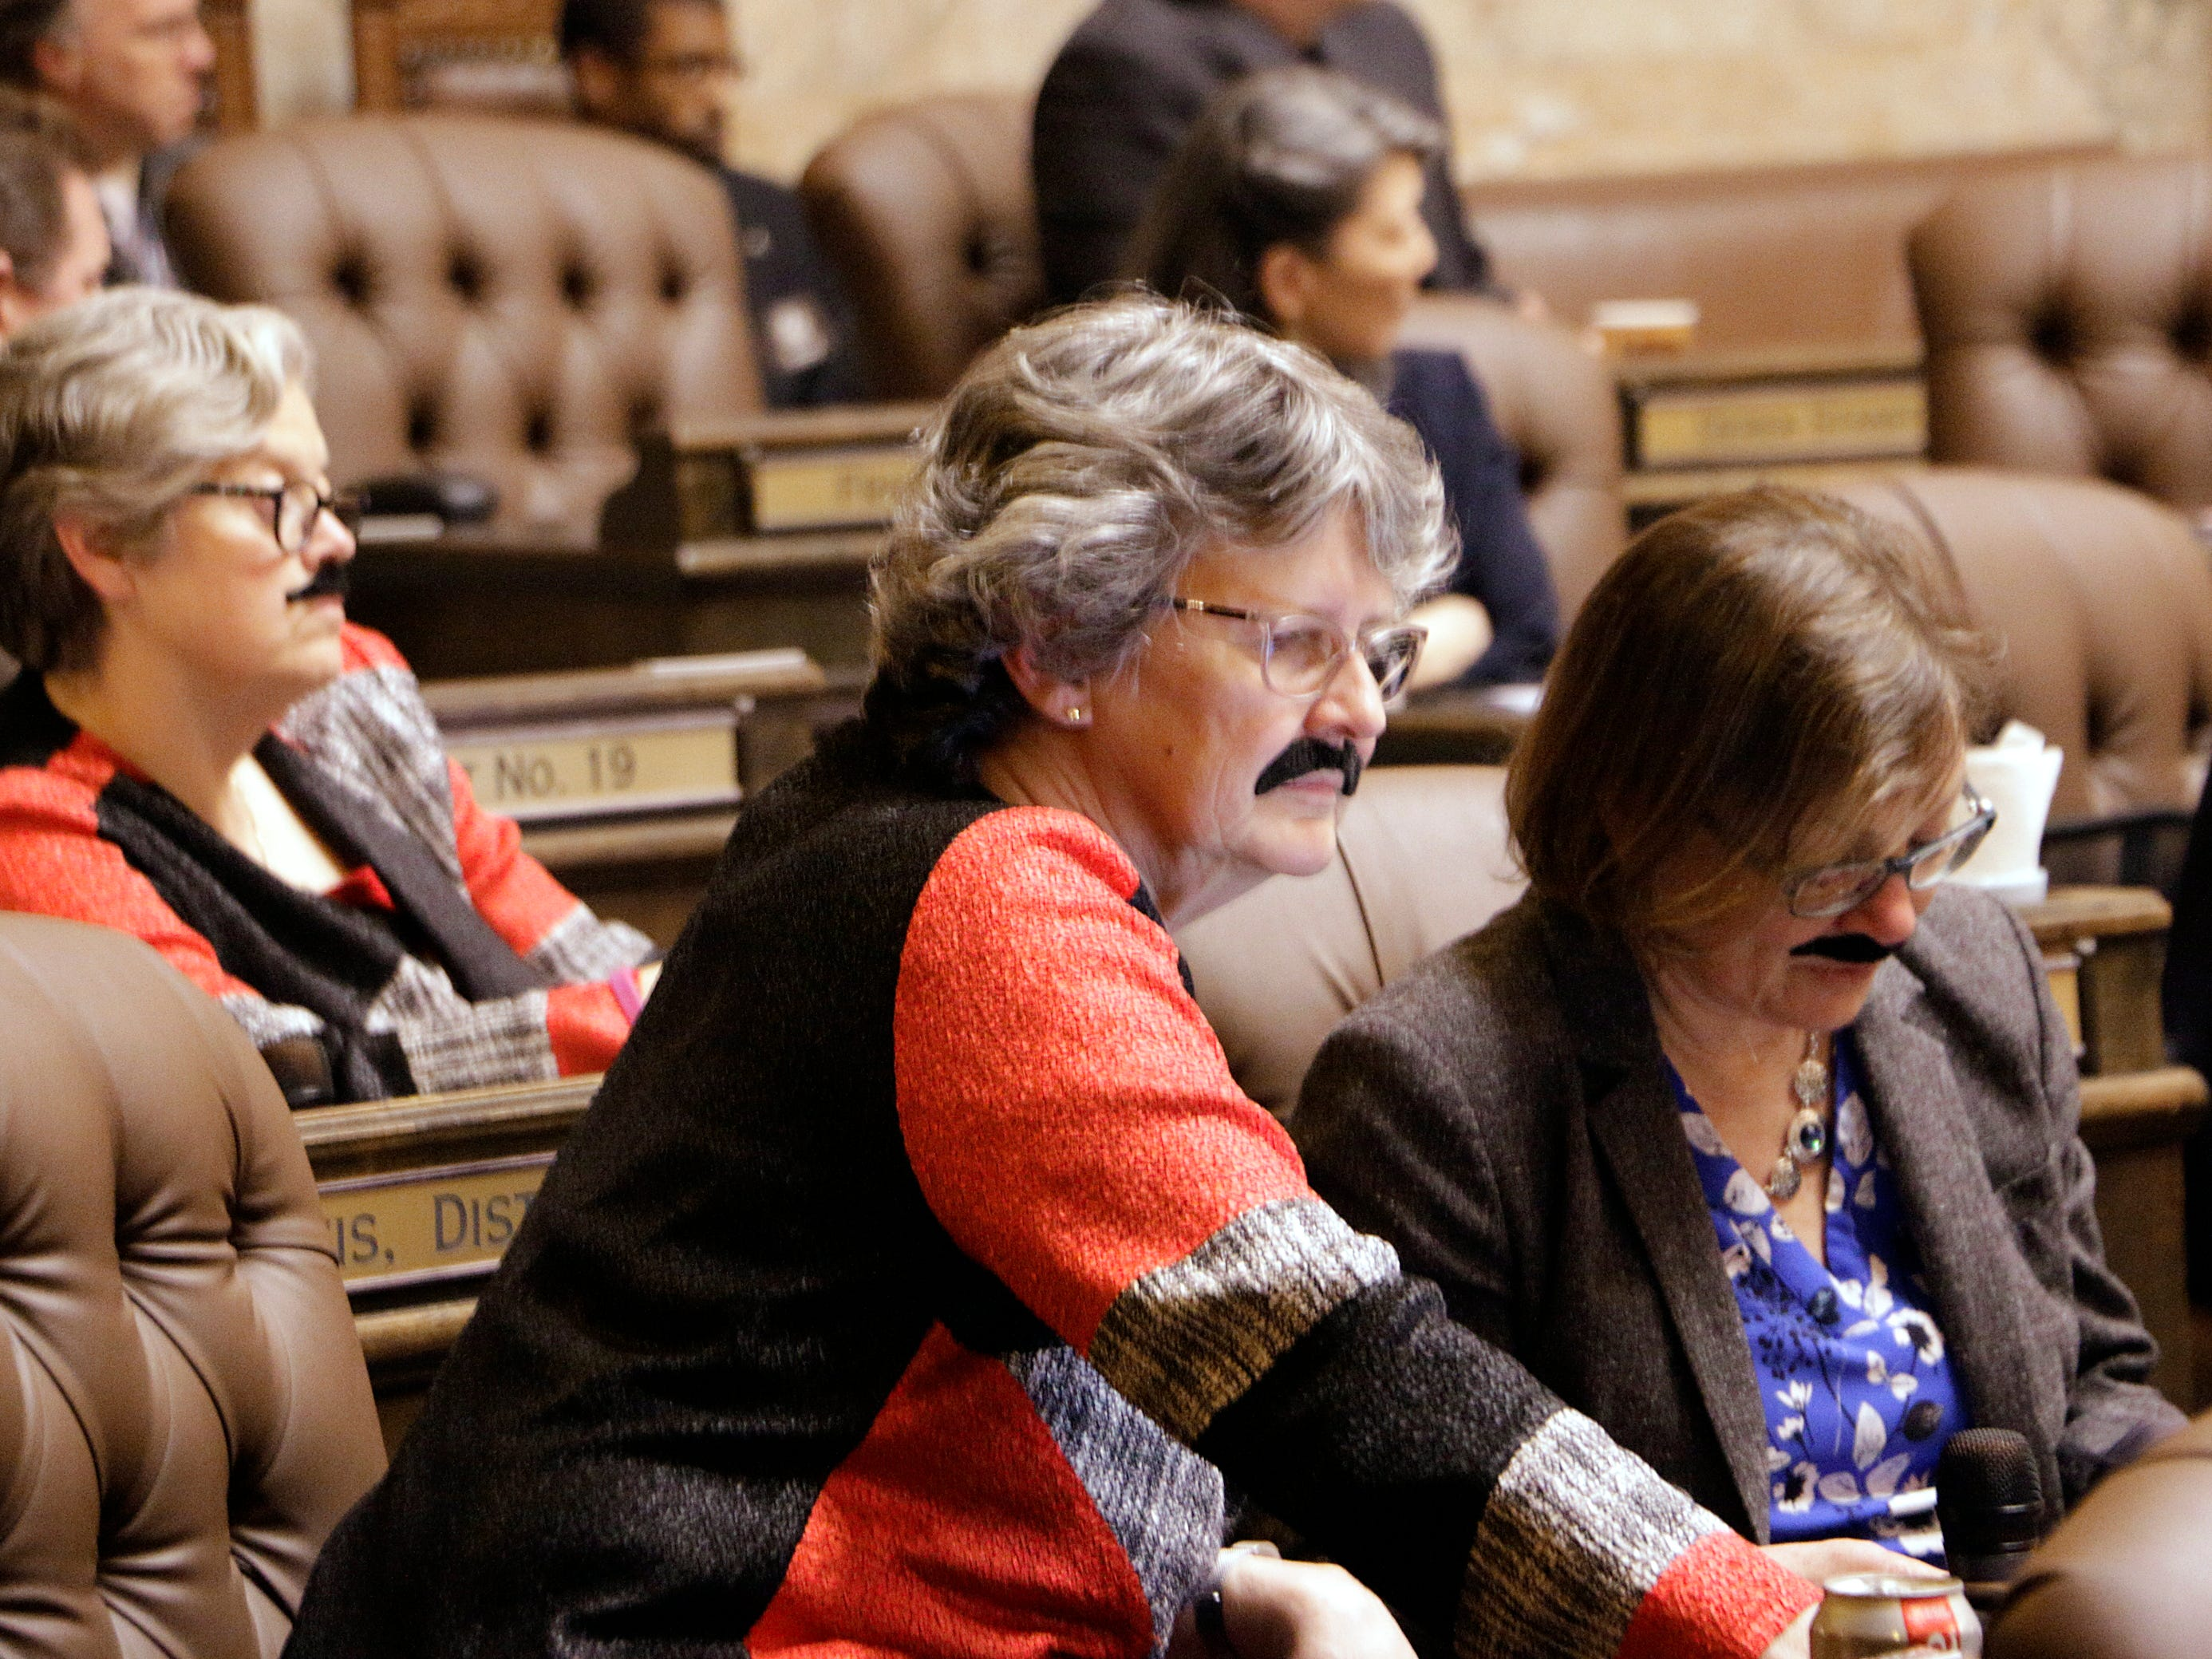 In Olympia, Washington, members of the state House wear fake moustaches to honor Speaker of the House Frank Chopp, who is stepping down from his leadership role after the legislative session ends. He is the state's longest serving speaker.